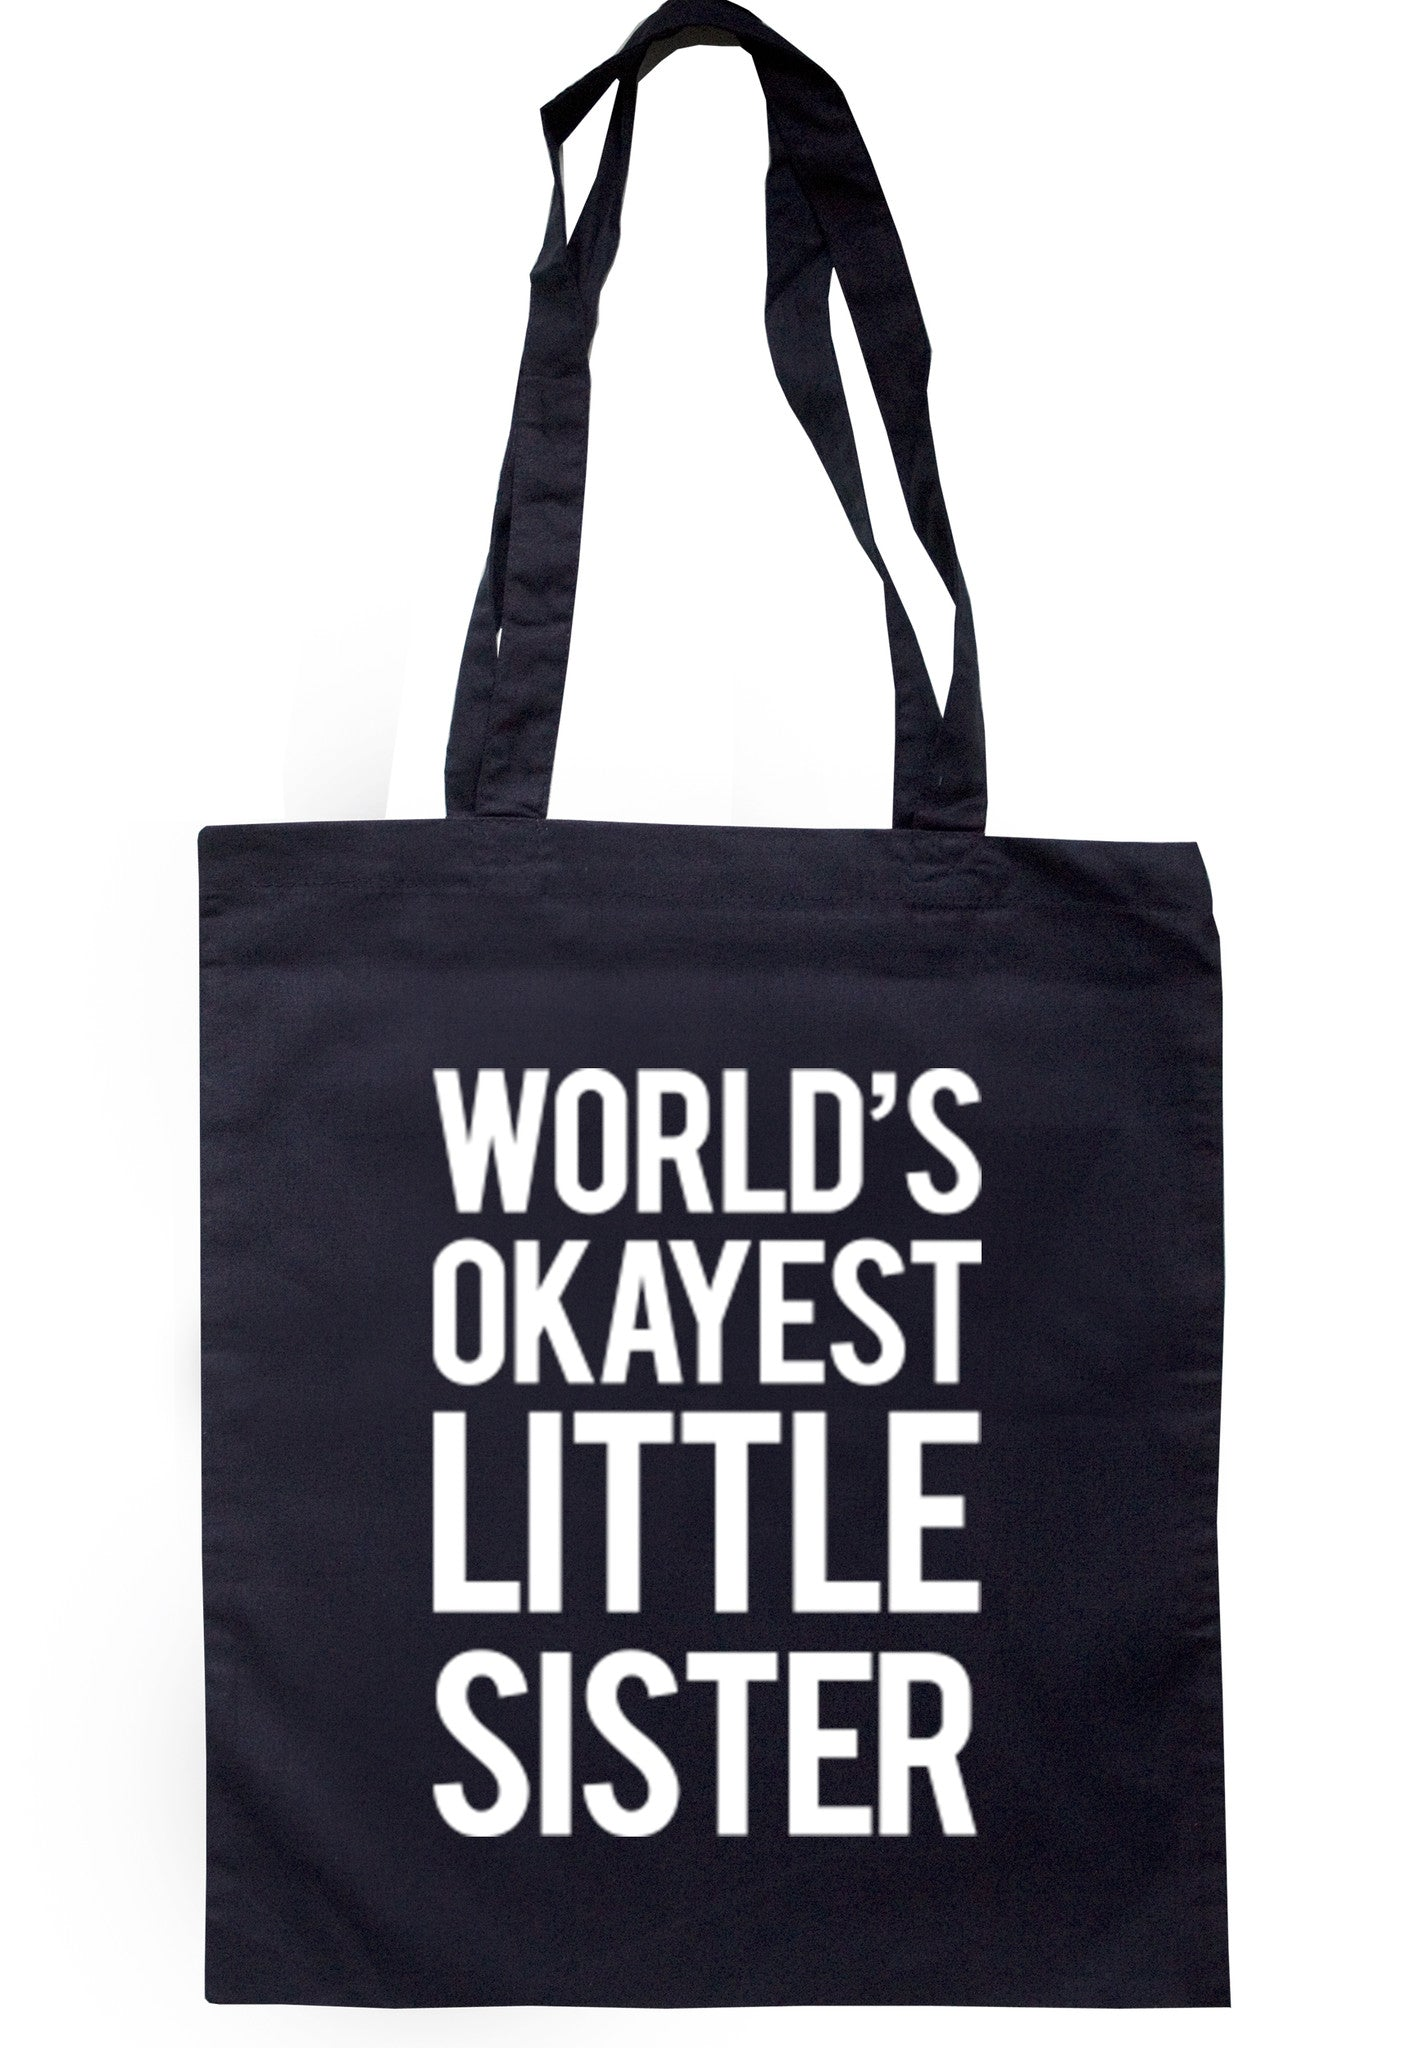 Worlds Okayest Little Sister Tote Bag TB0037 - Illustrated Identity Ltd.